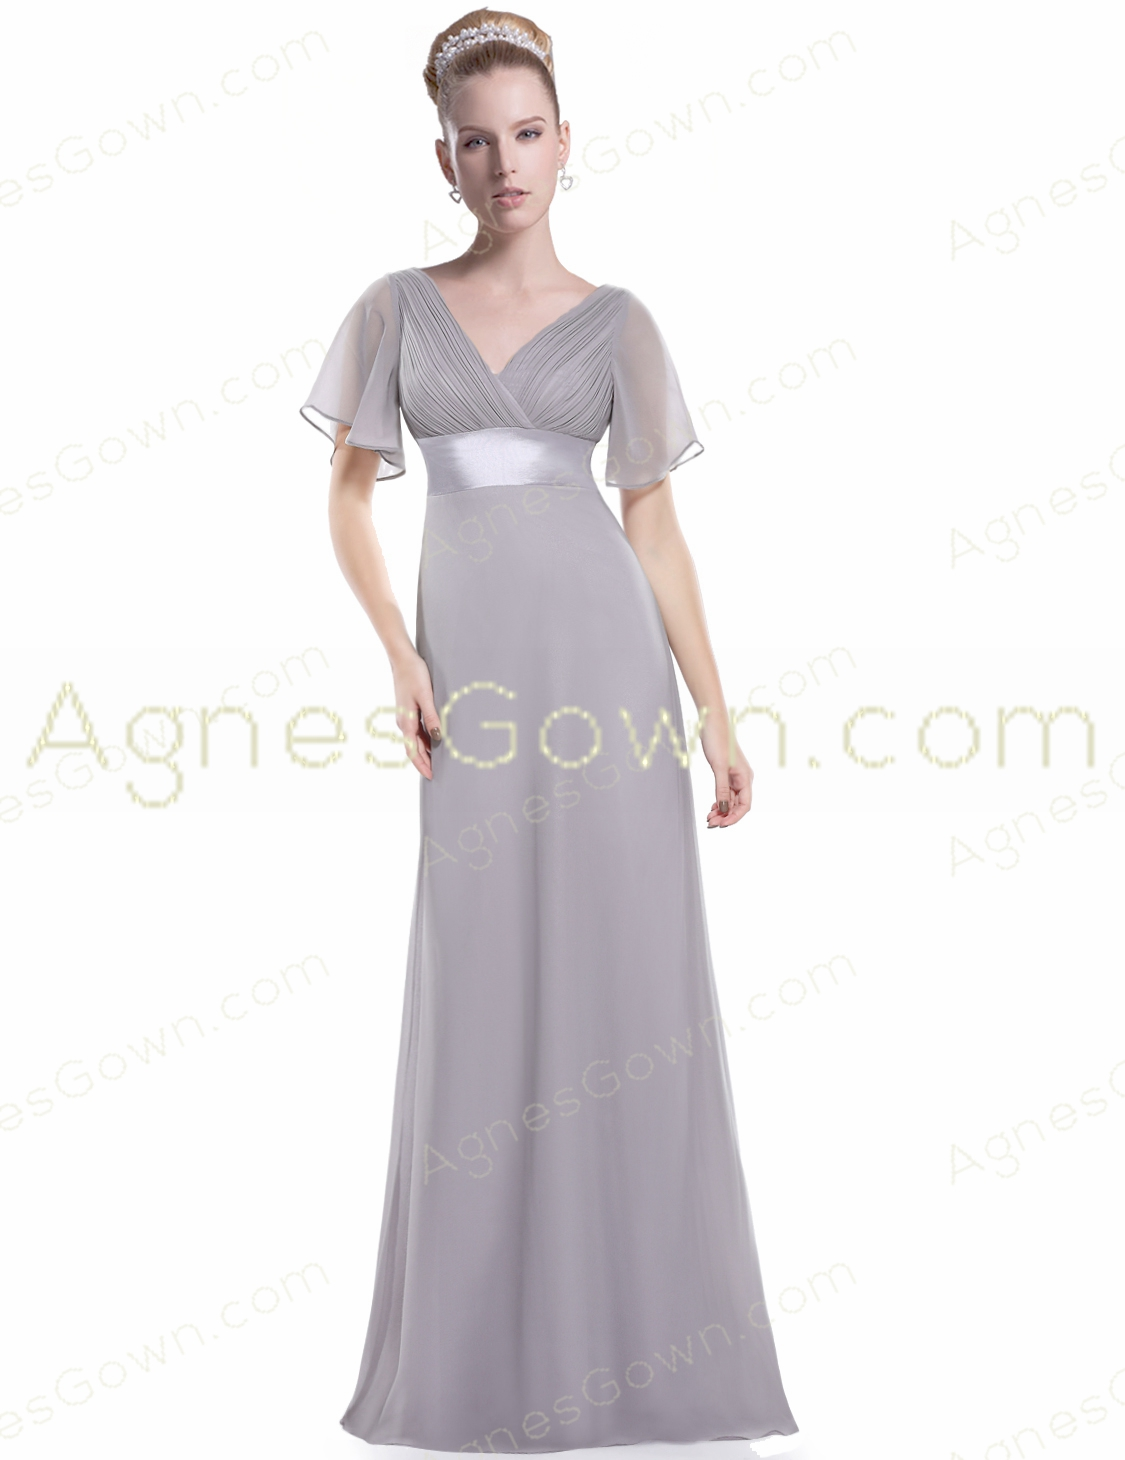 Noble V-Neckline Short Sleeves Silver Bridesmaid Dress